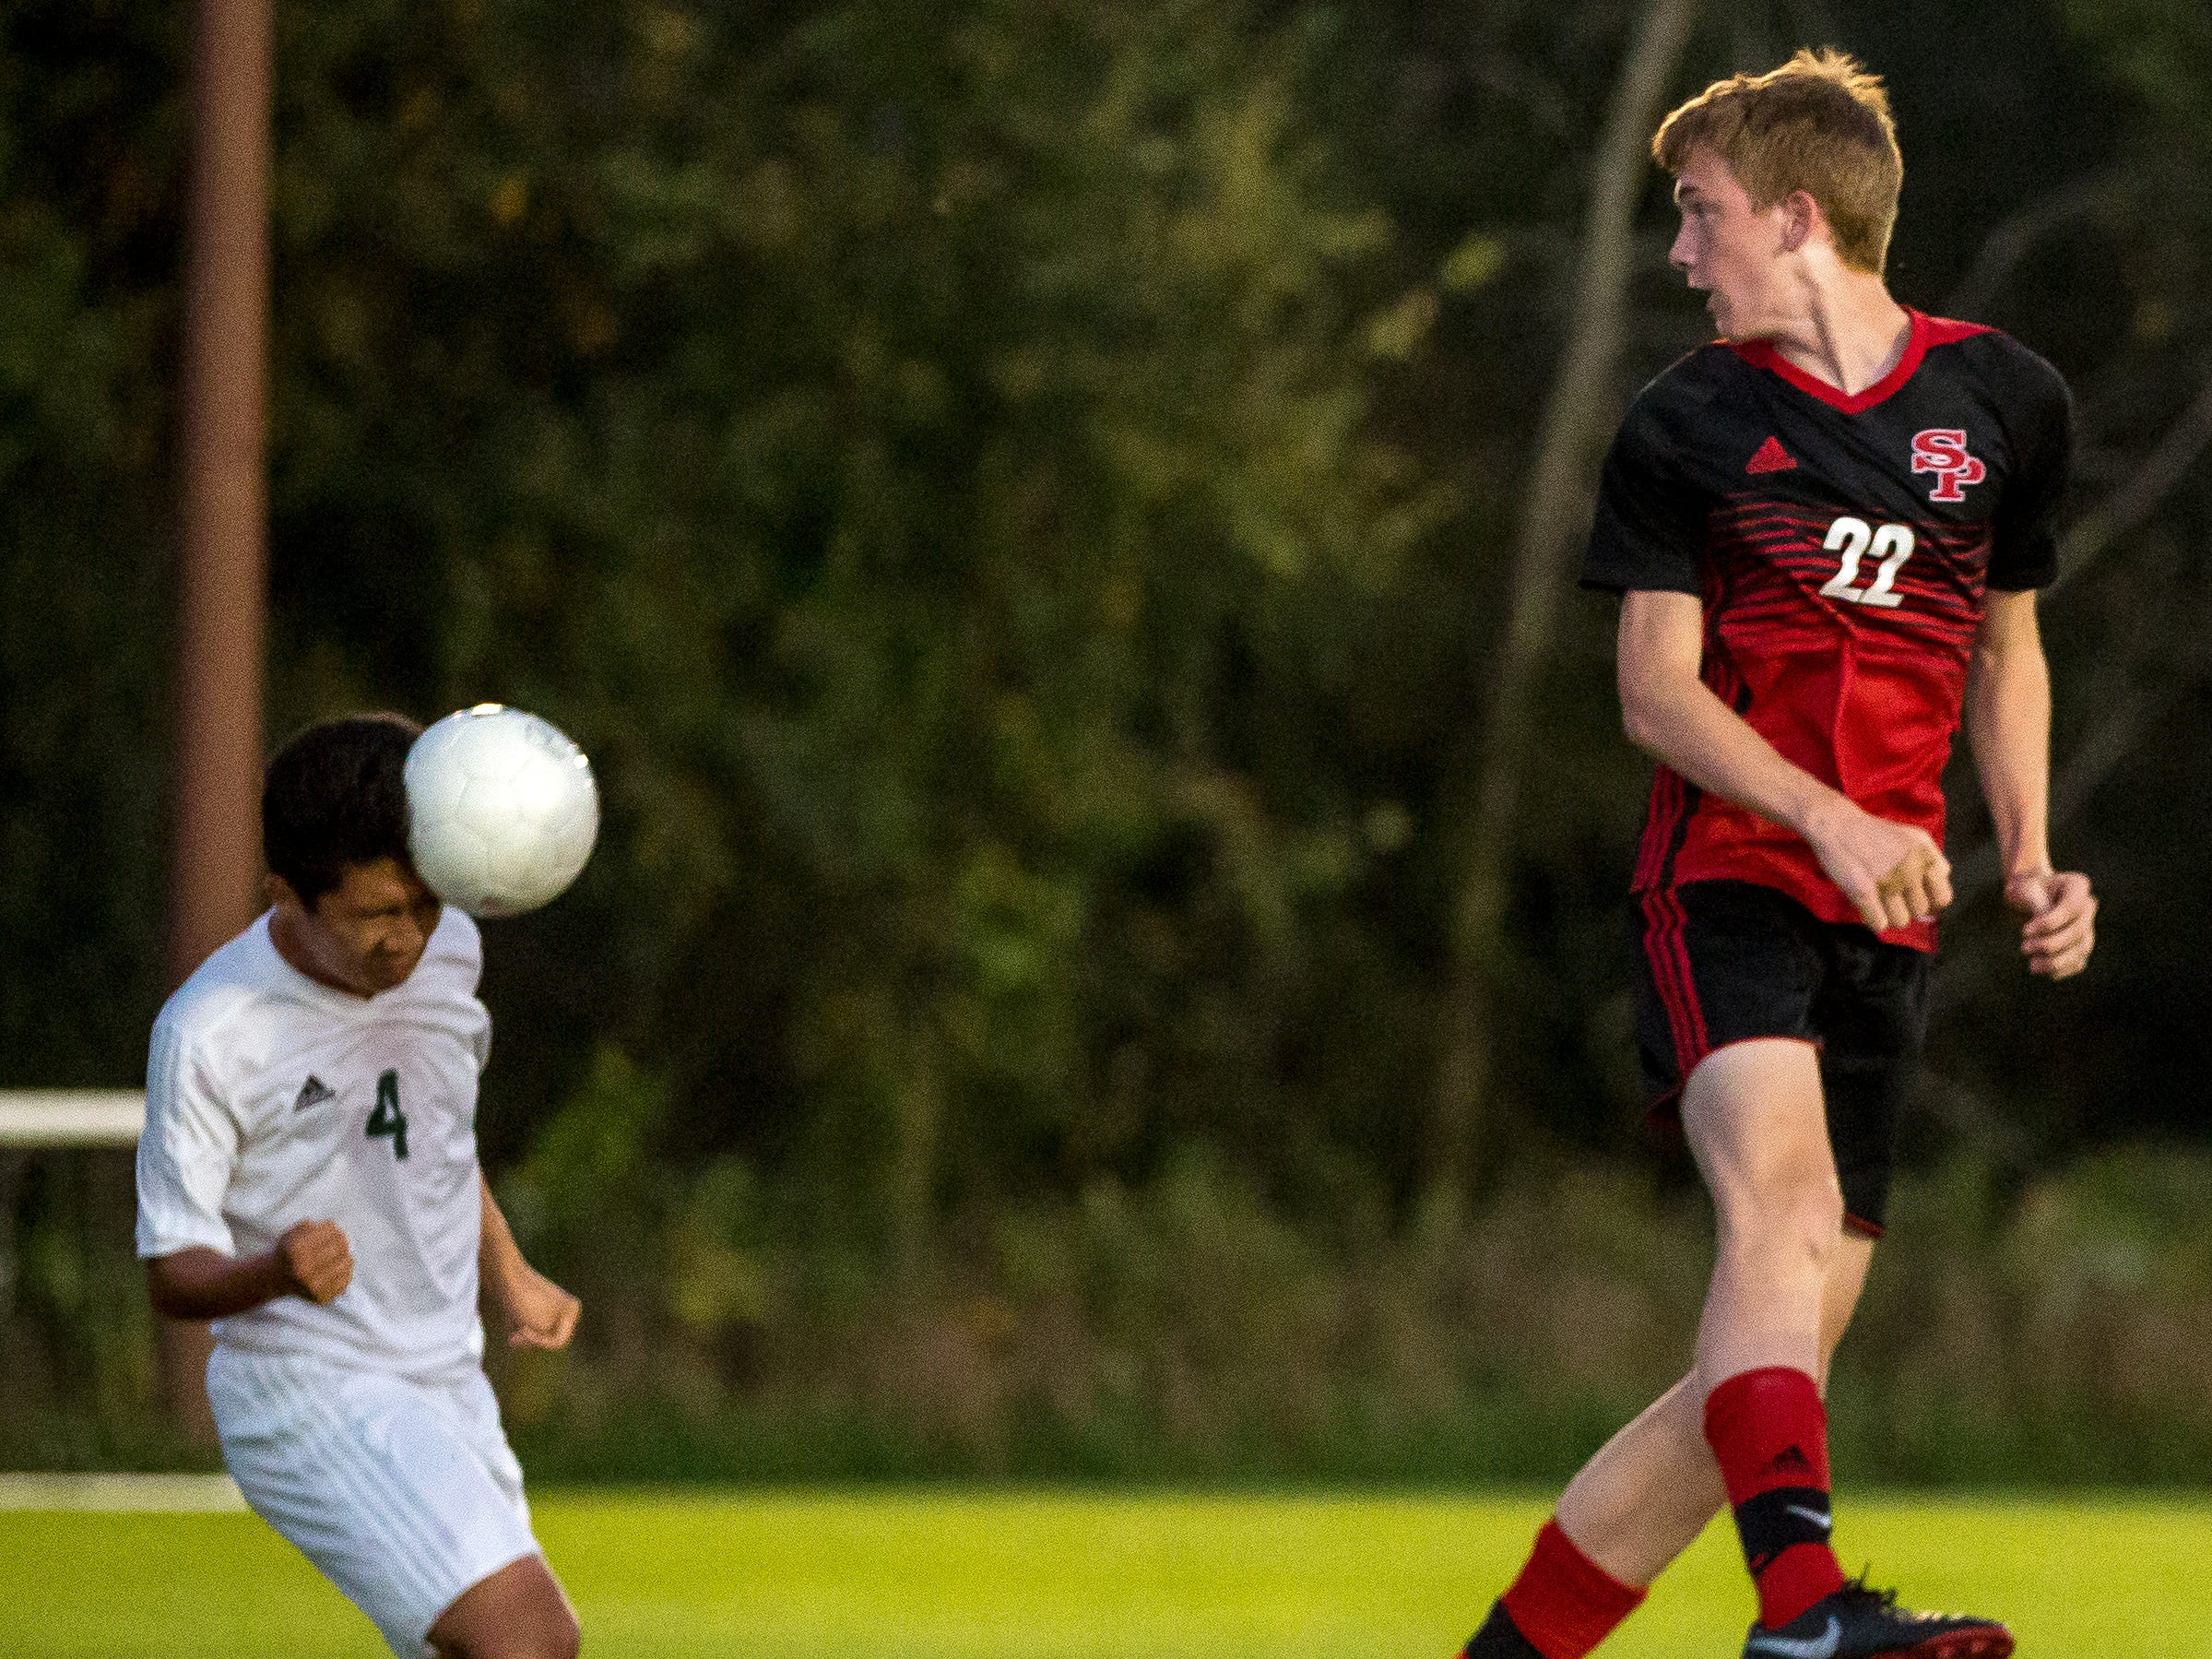 D.C. Everest player Chersa Lo heads the ball as SPASH's Jake Williams jumps to block it during a soccer game between SPASH and D.C. Everest in Stevens Point, Wis., September 13, 2018.